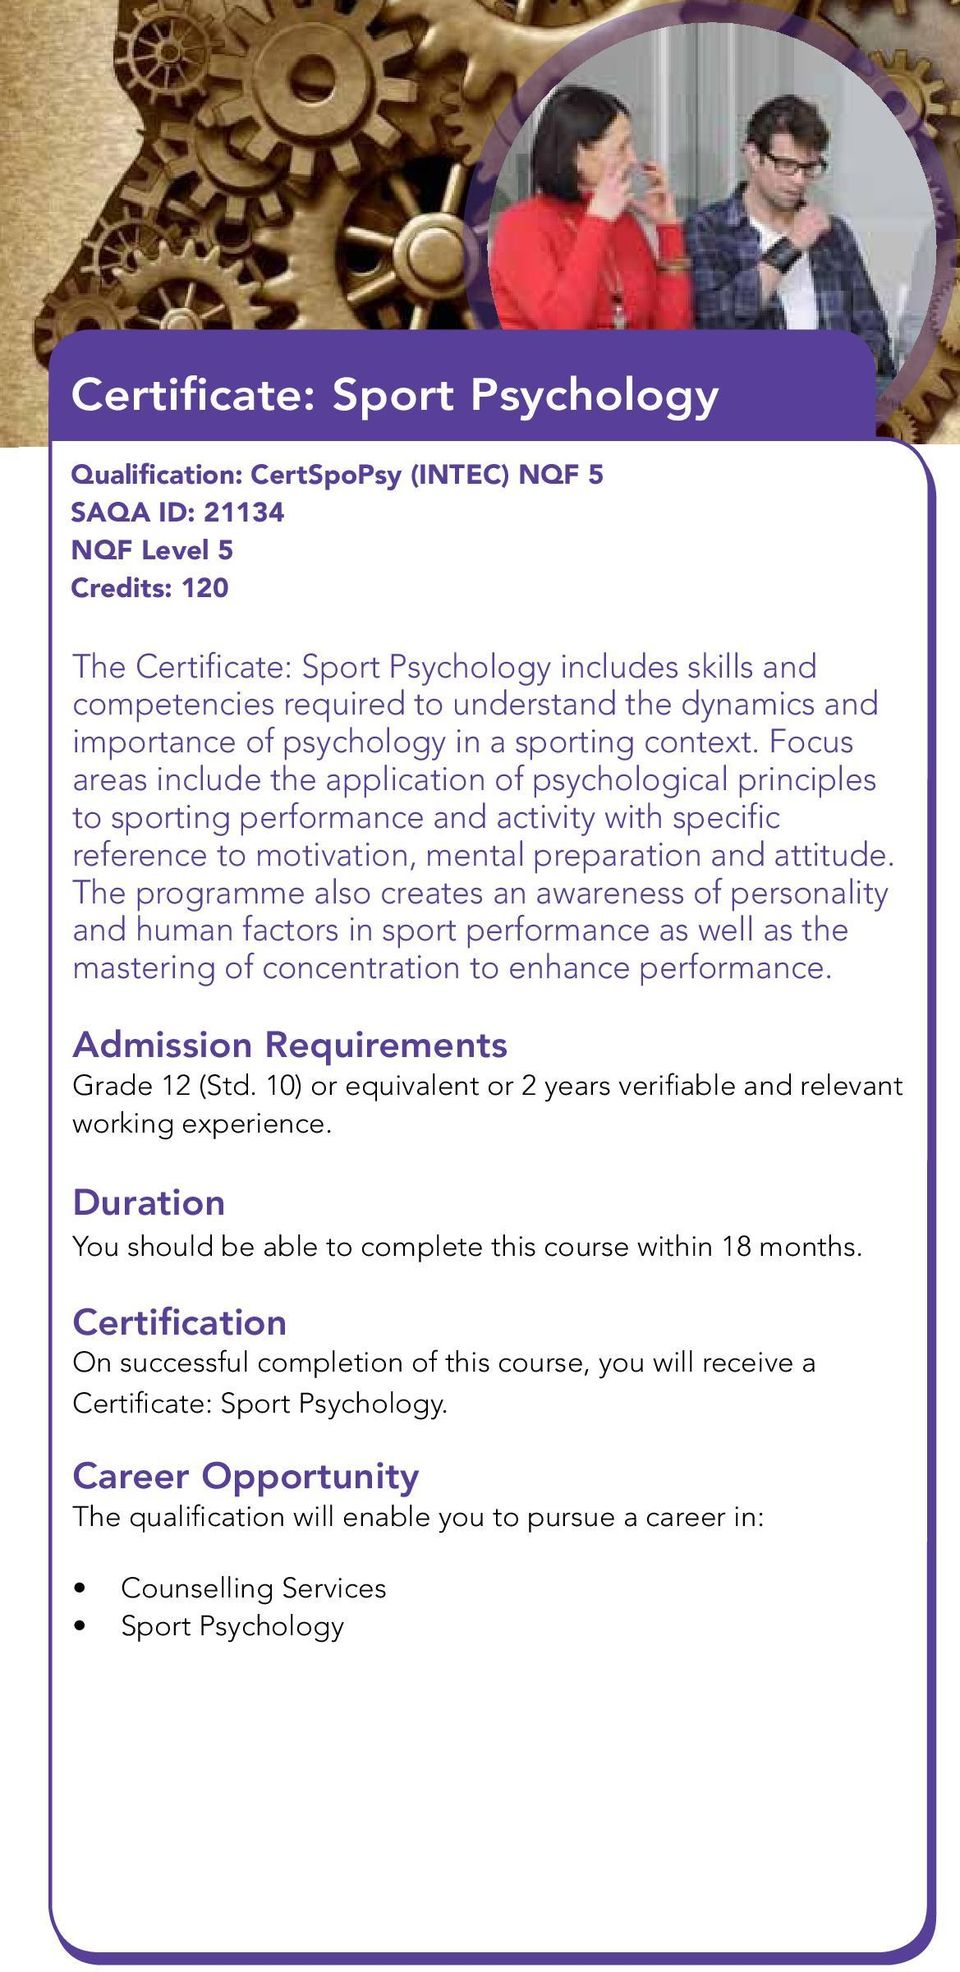 Focus areas include the application of psychological principles to sporting performance and activity with specific reference to motivation, mental preparation and attitude.